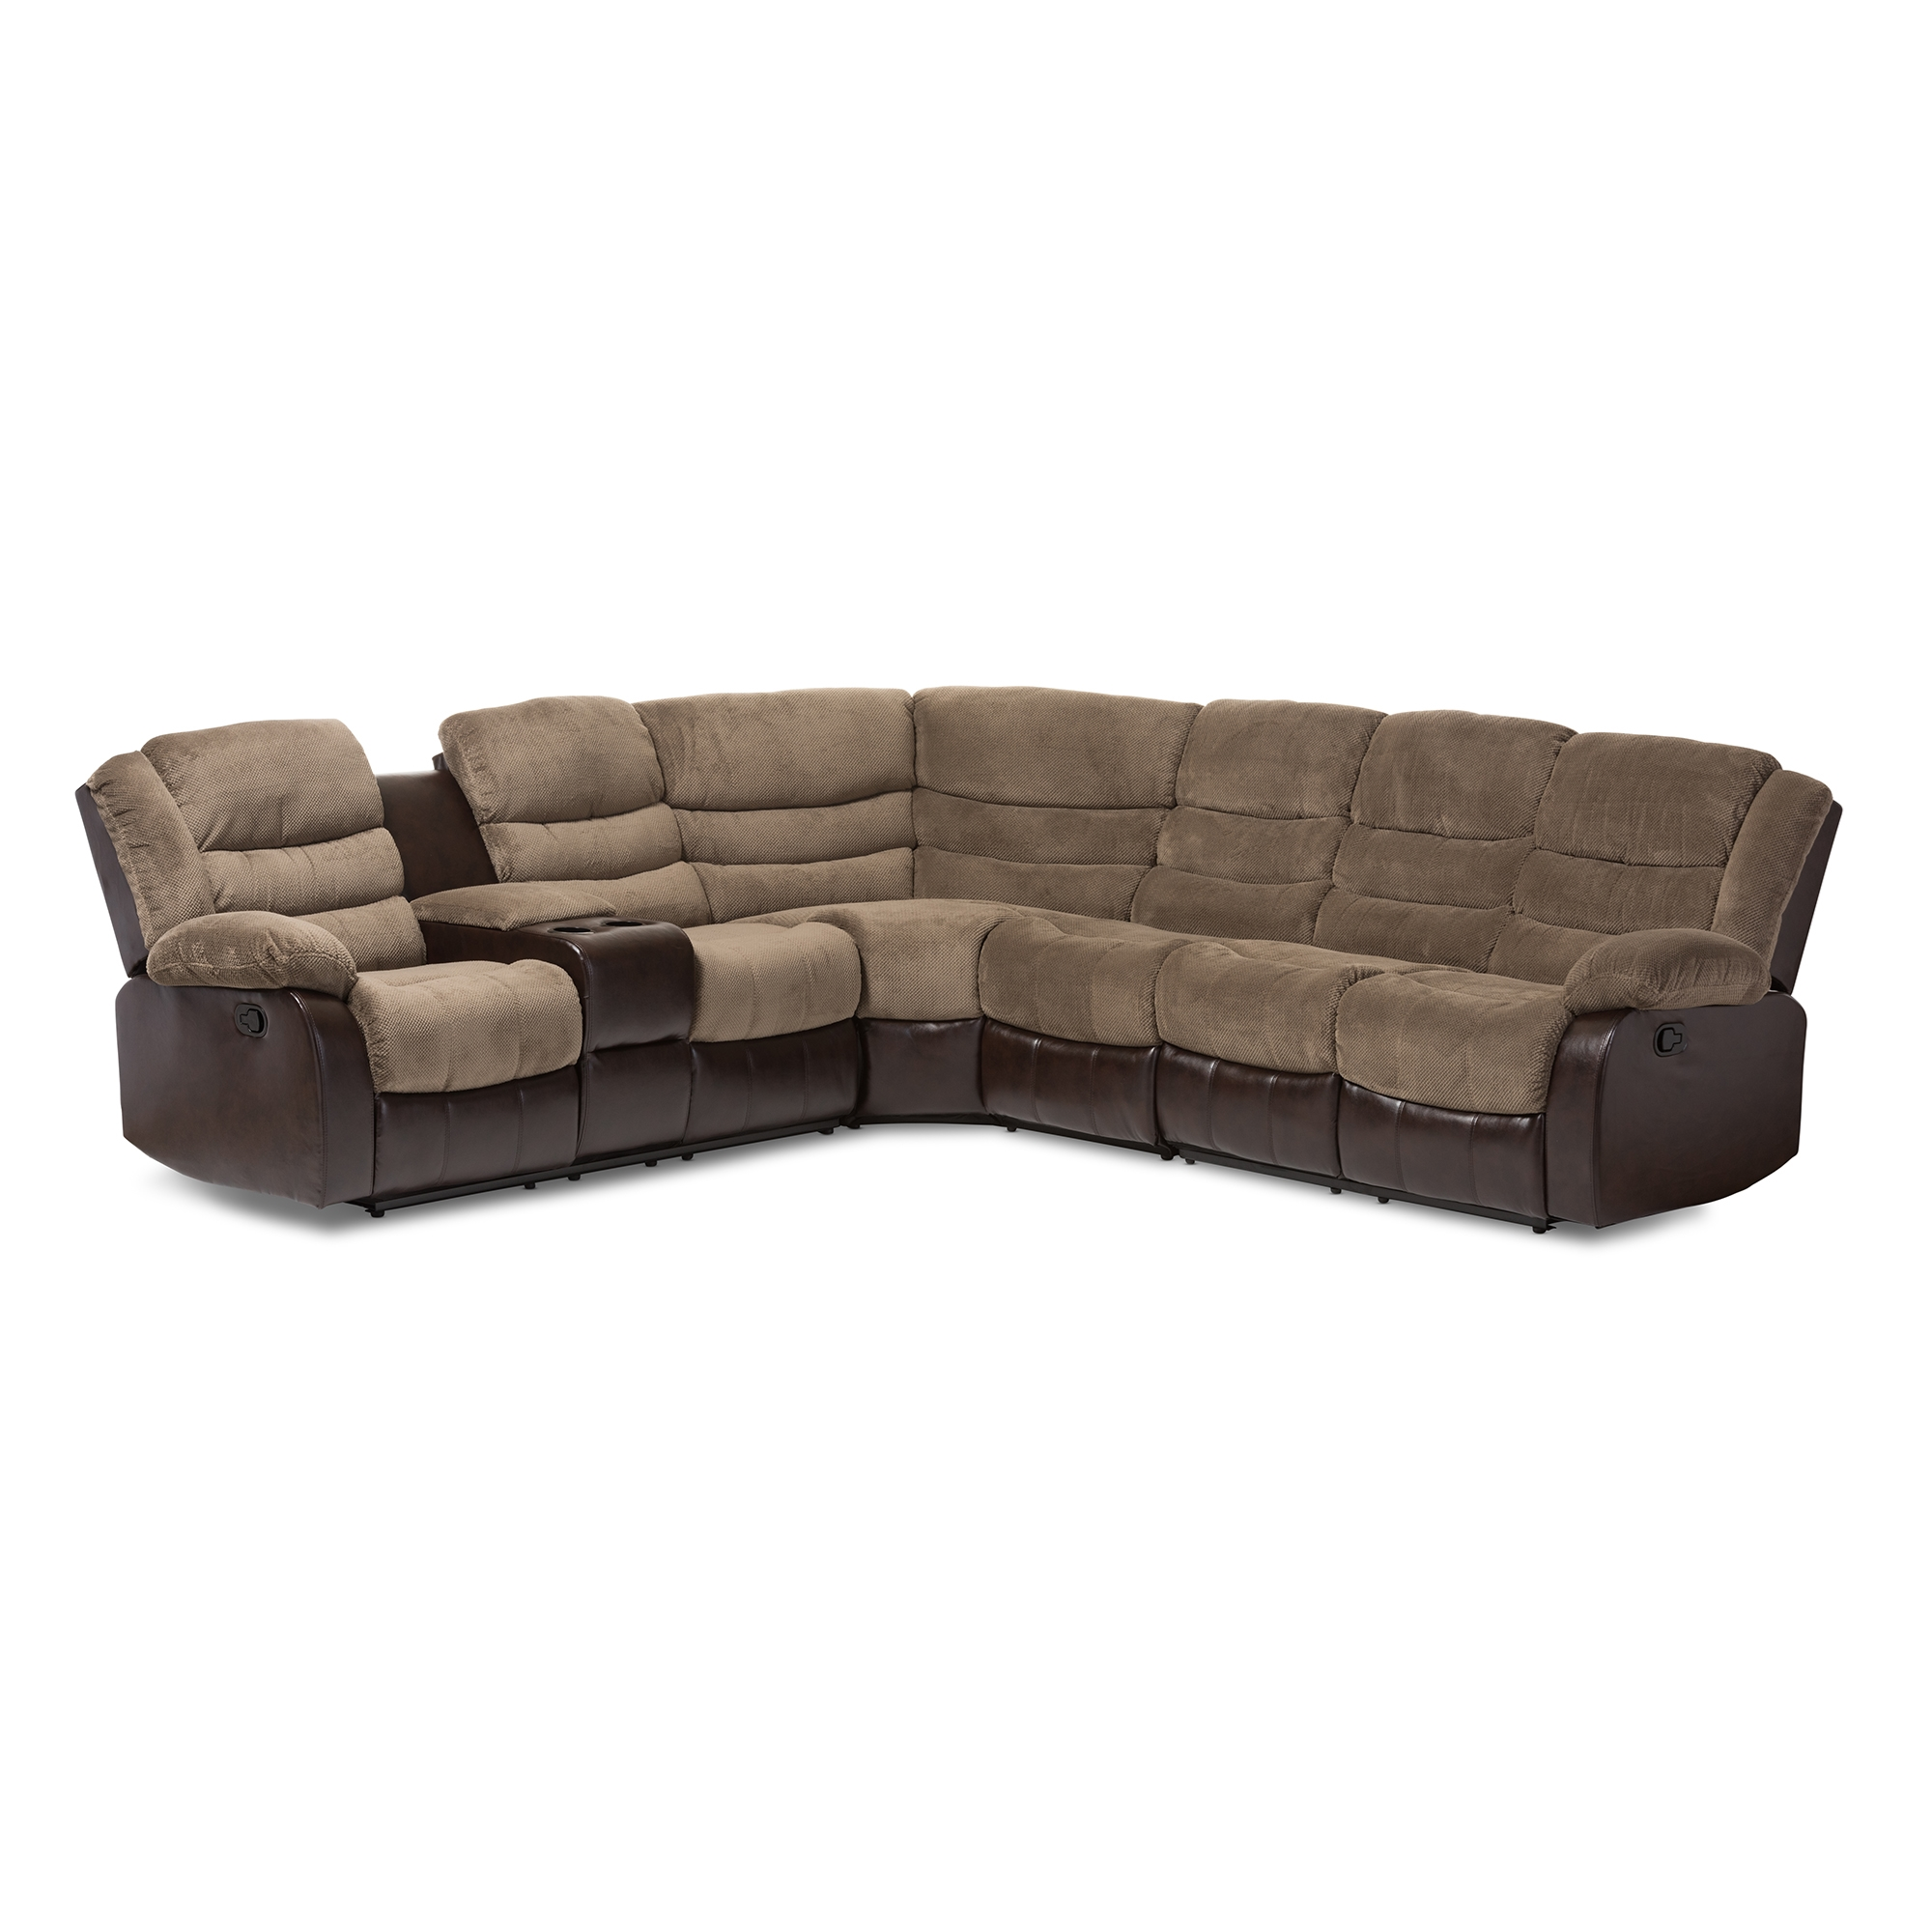 Baxton Studio Robinson Modern And Contemporary Brown Towel Fabric And Brown  Faux Leather Two Tone 7 Piece Sectional Sofa